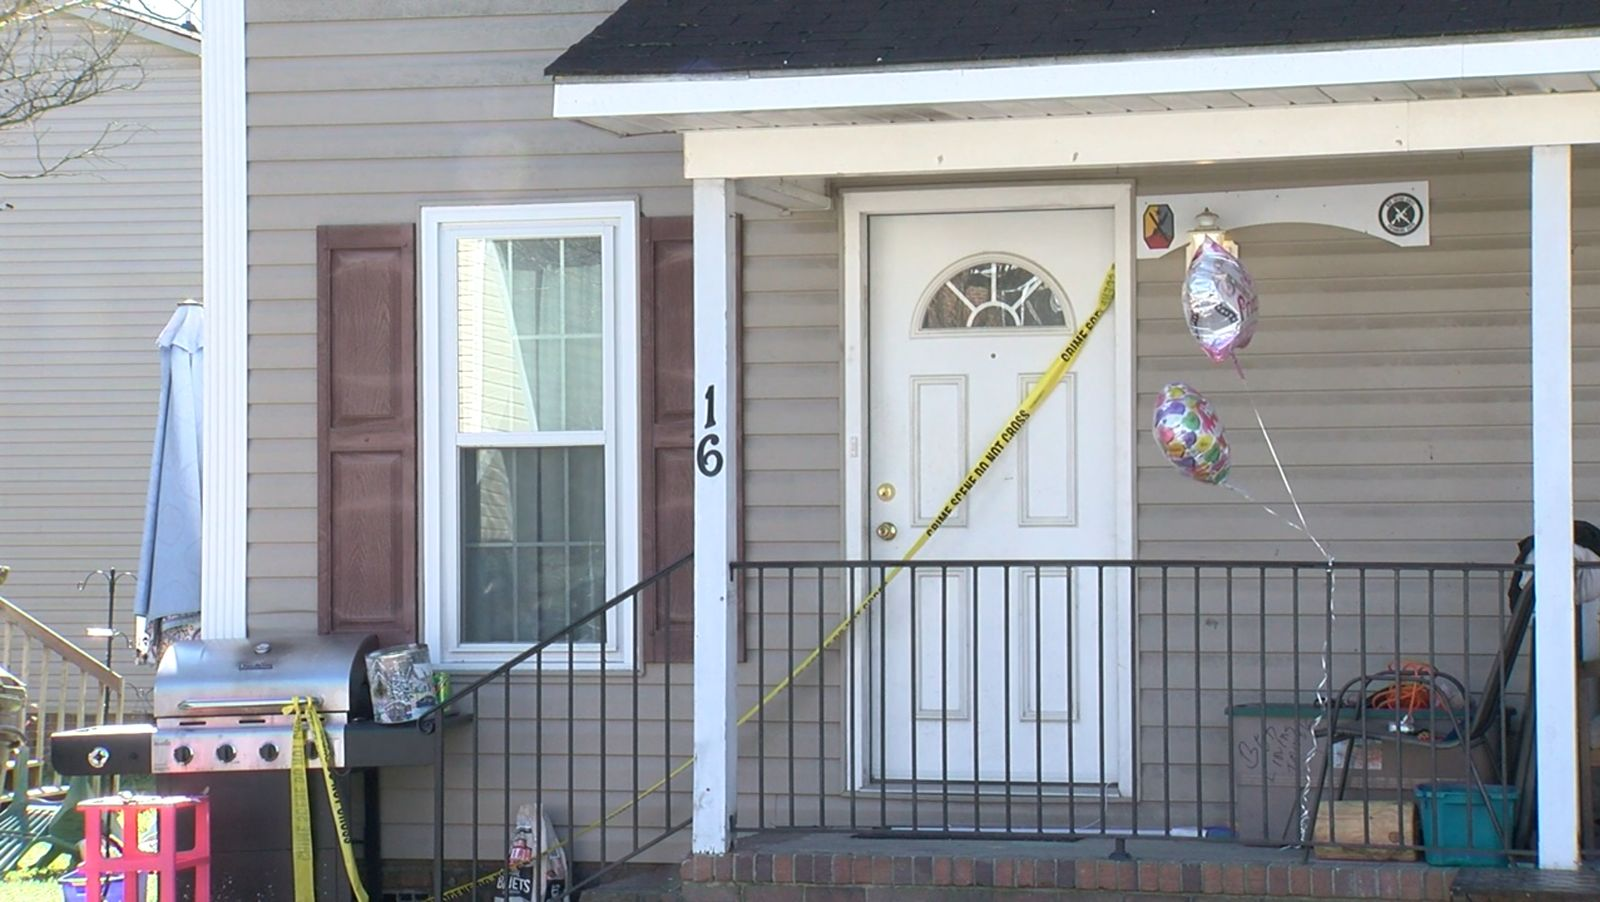 Police in South Carolina say evidence links Faye Swetlik to dead neighbor found nearby